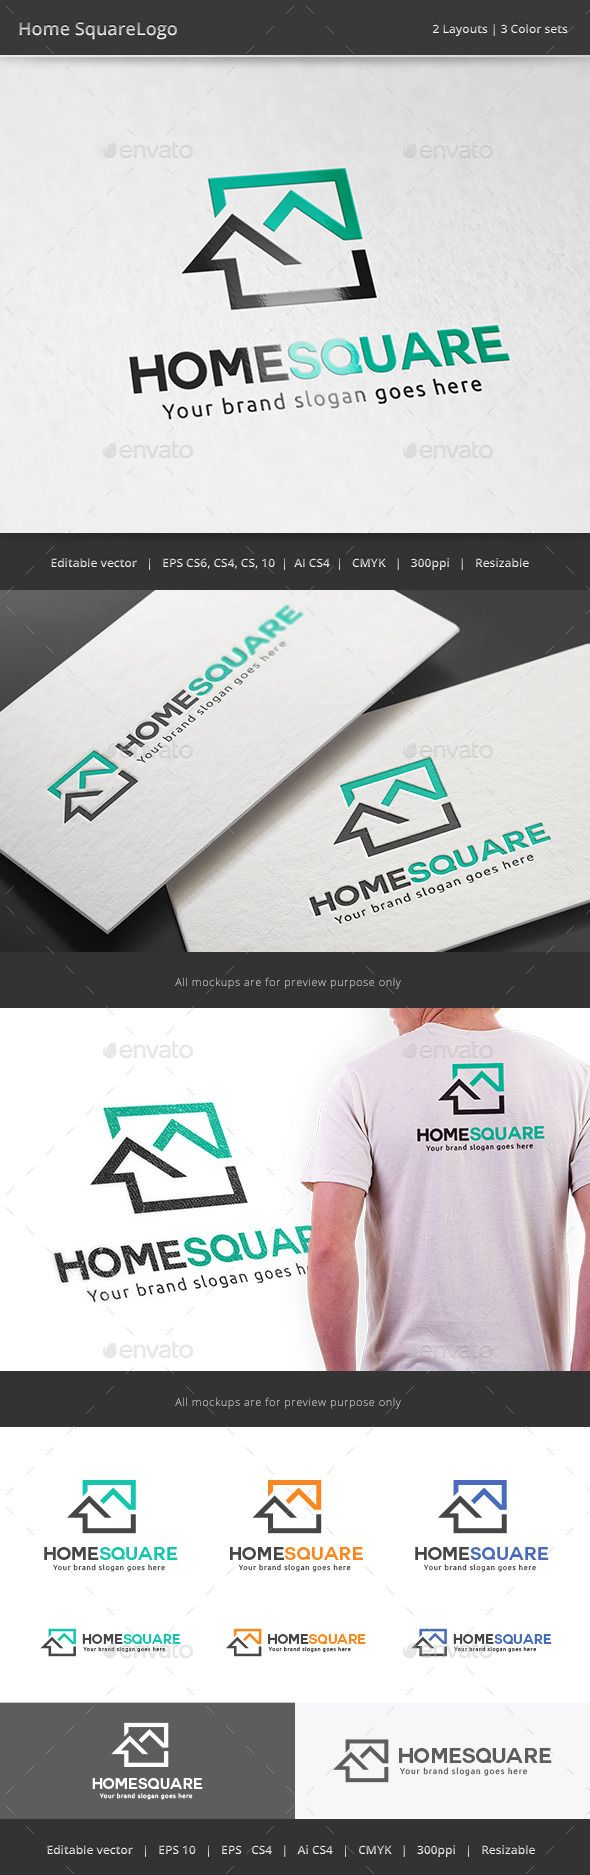 93 best real estate logo images on pinterest real estate logo home square real estate logo reheart Choice Image